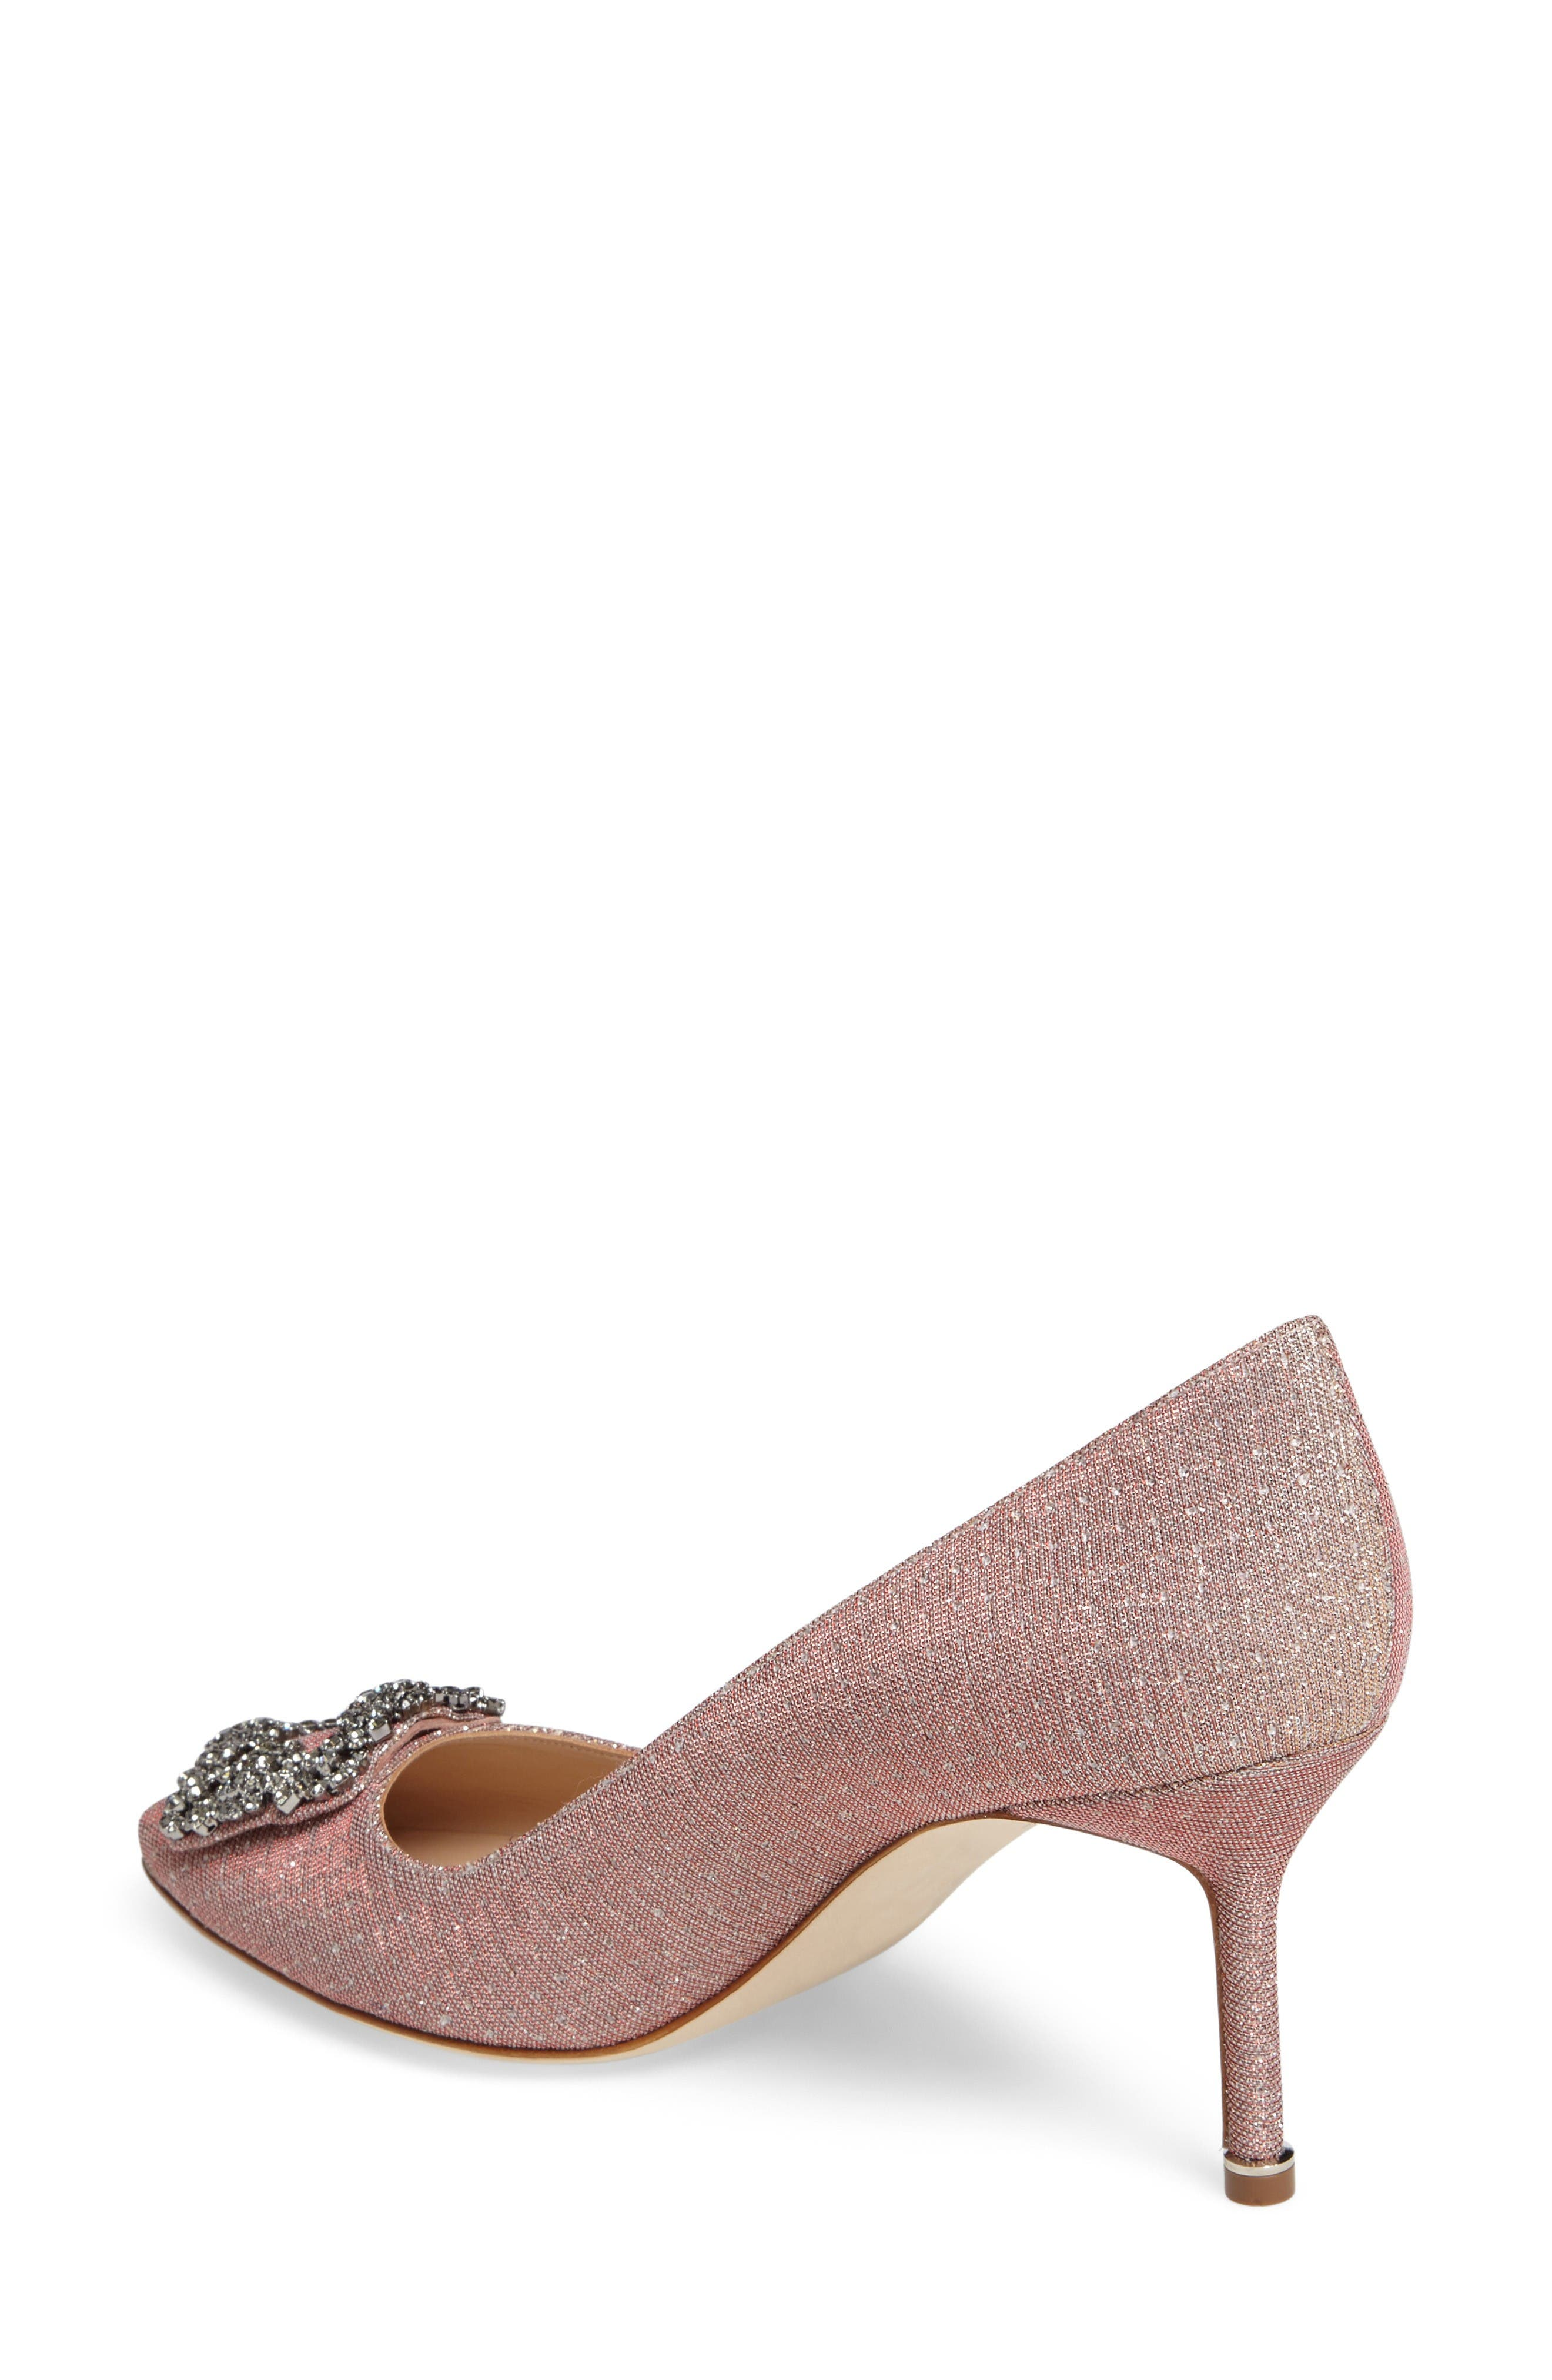 Hangisi Pump,                             Alternate thumbnail 2, color,                             Champagne Fabric